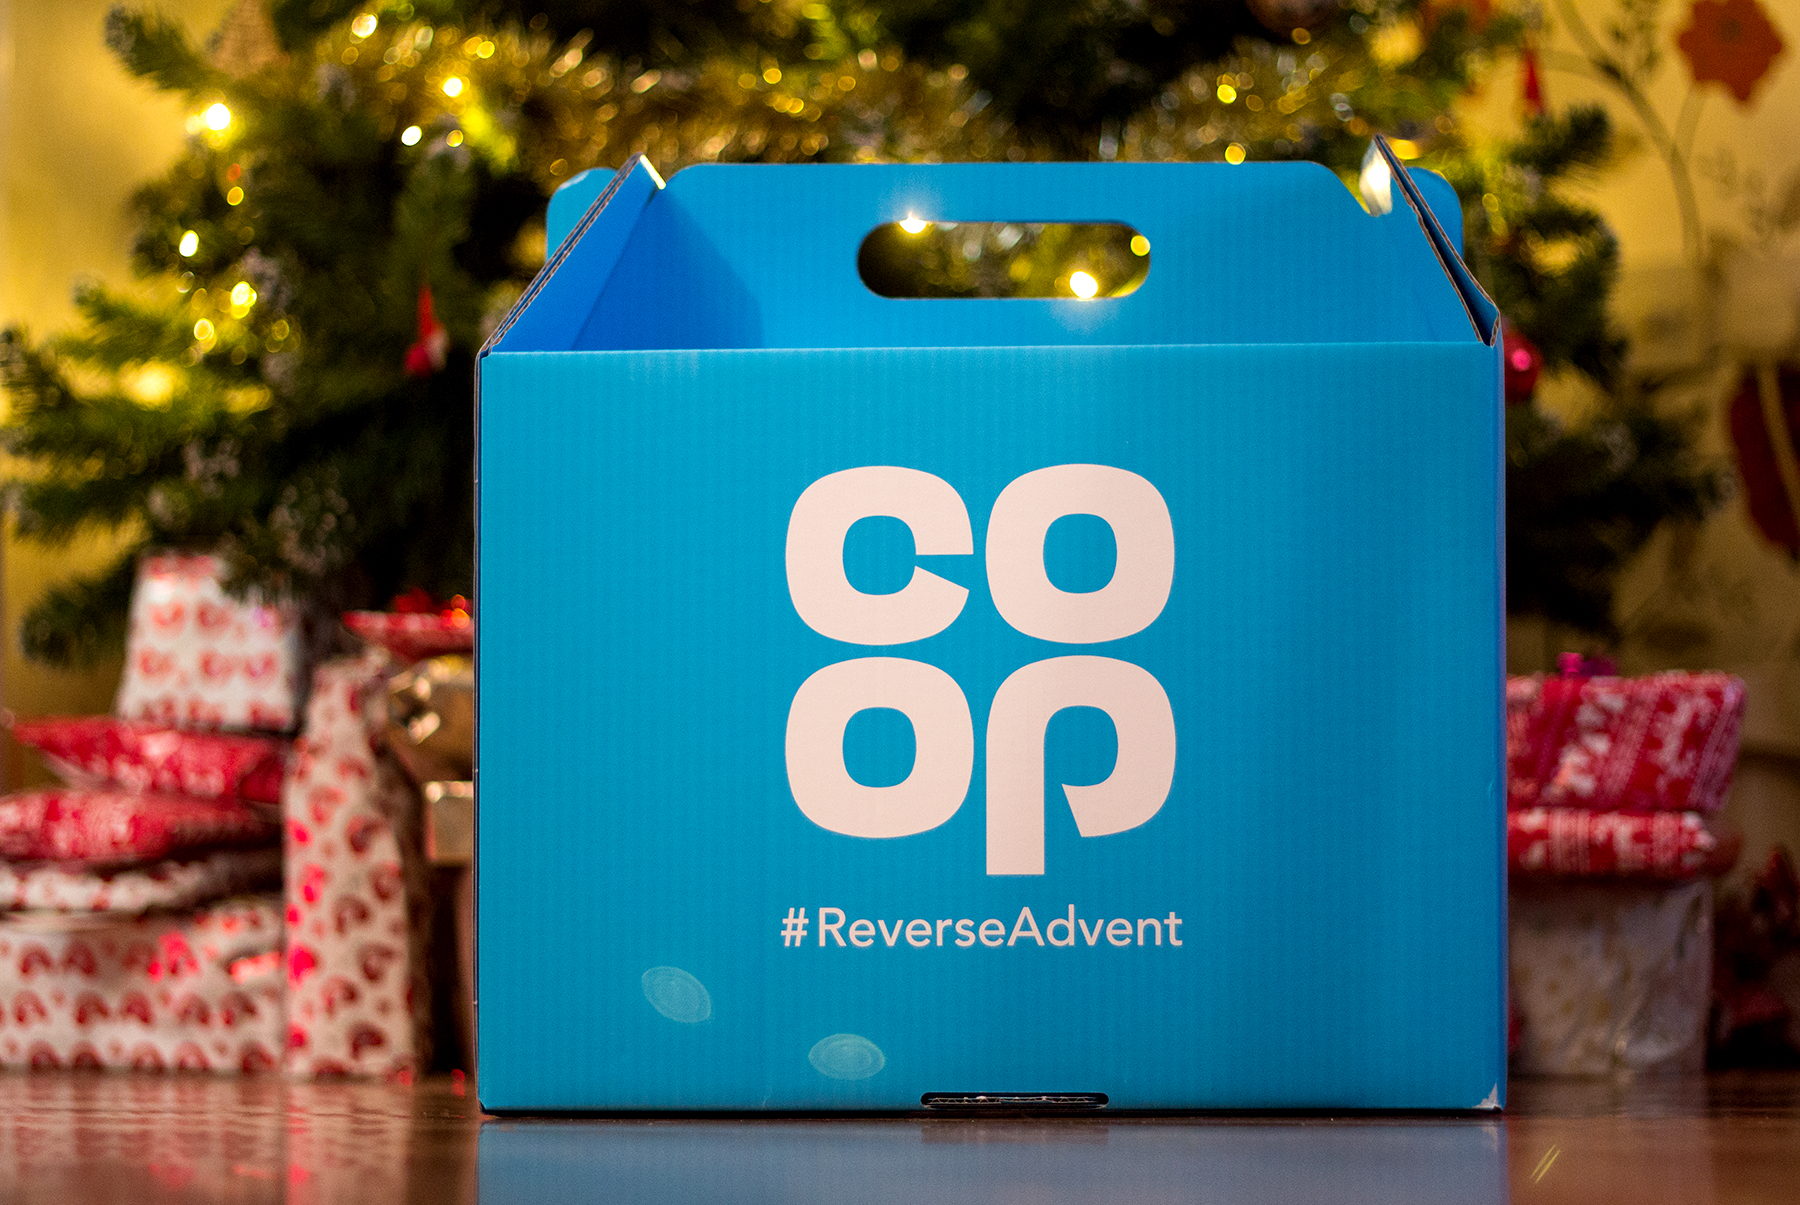 #ReverseAdvent with Co-Op // #15 of Blogmas '16